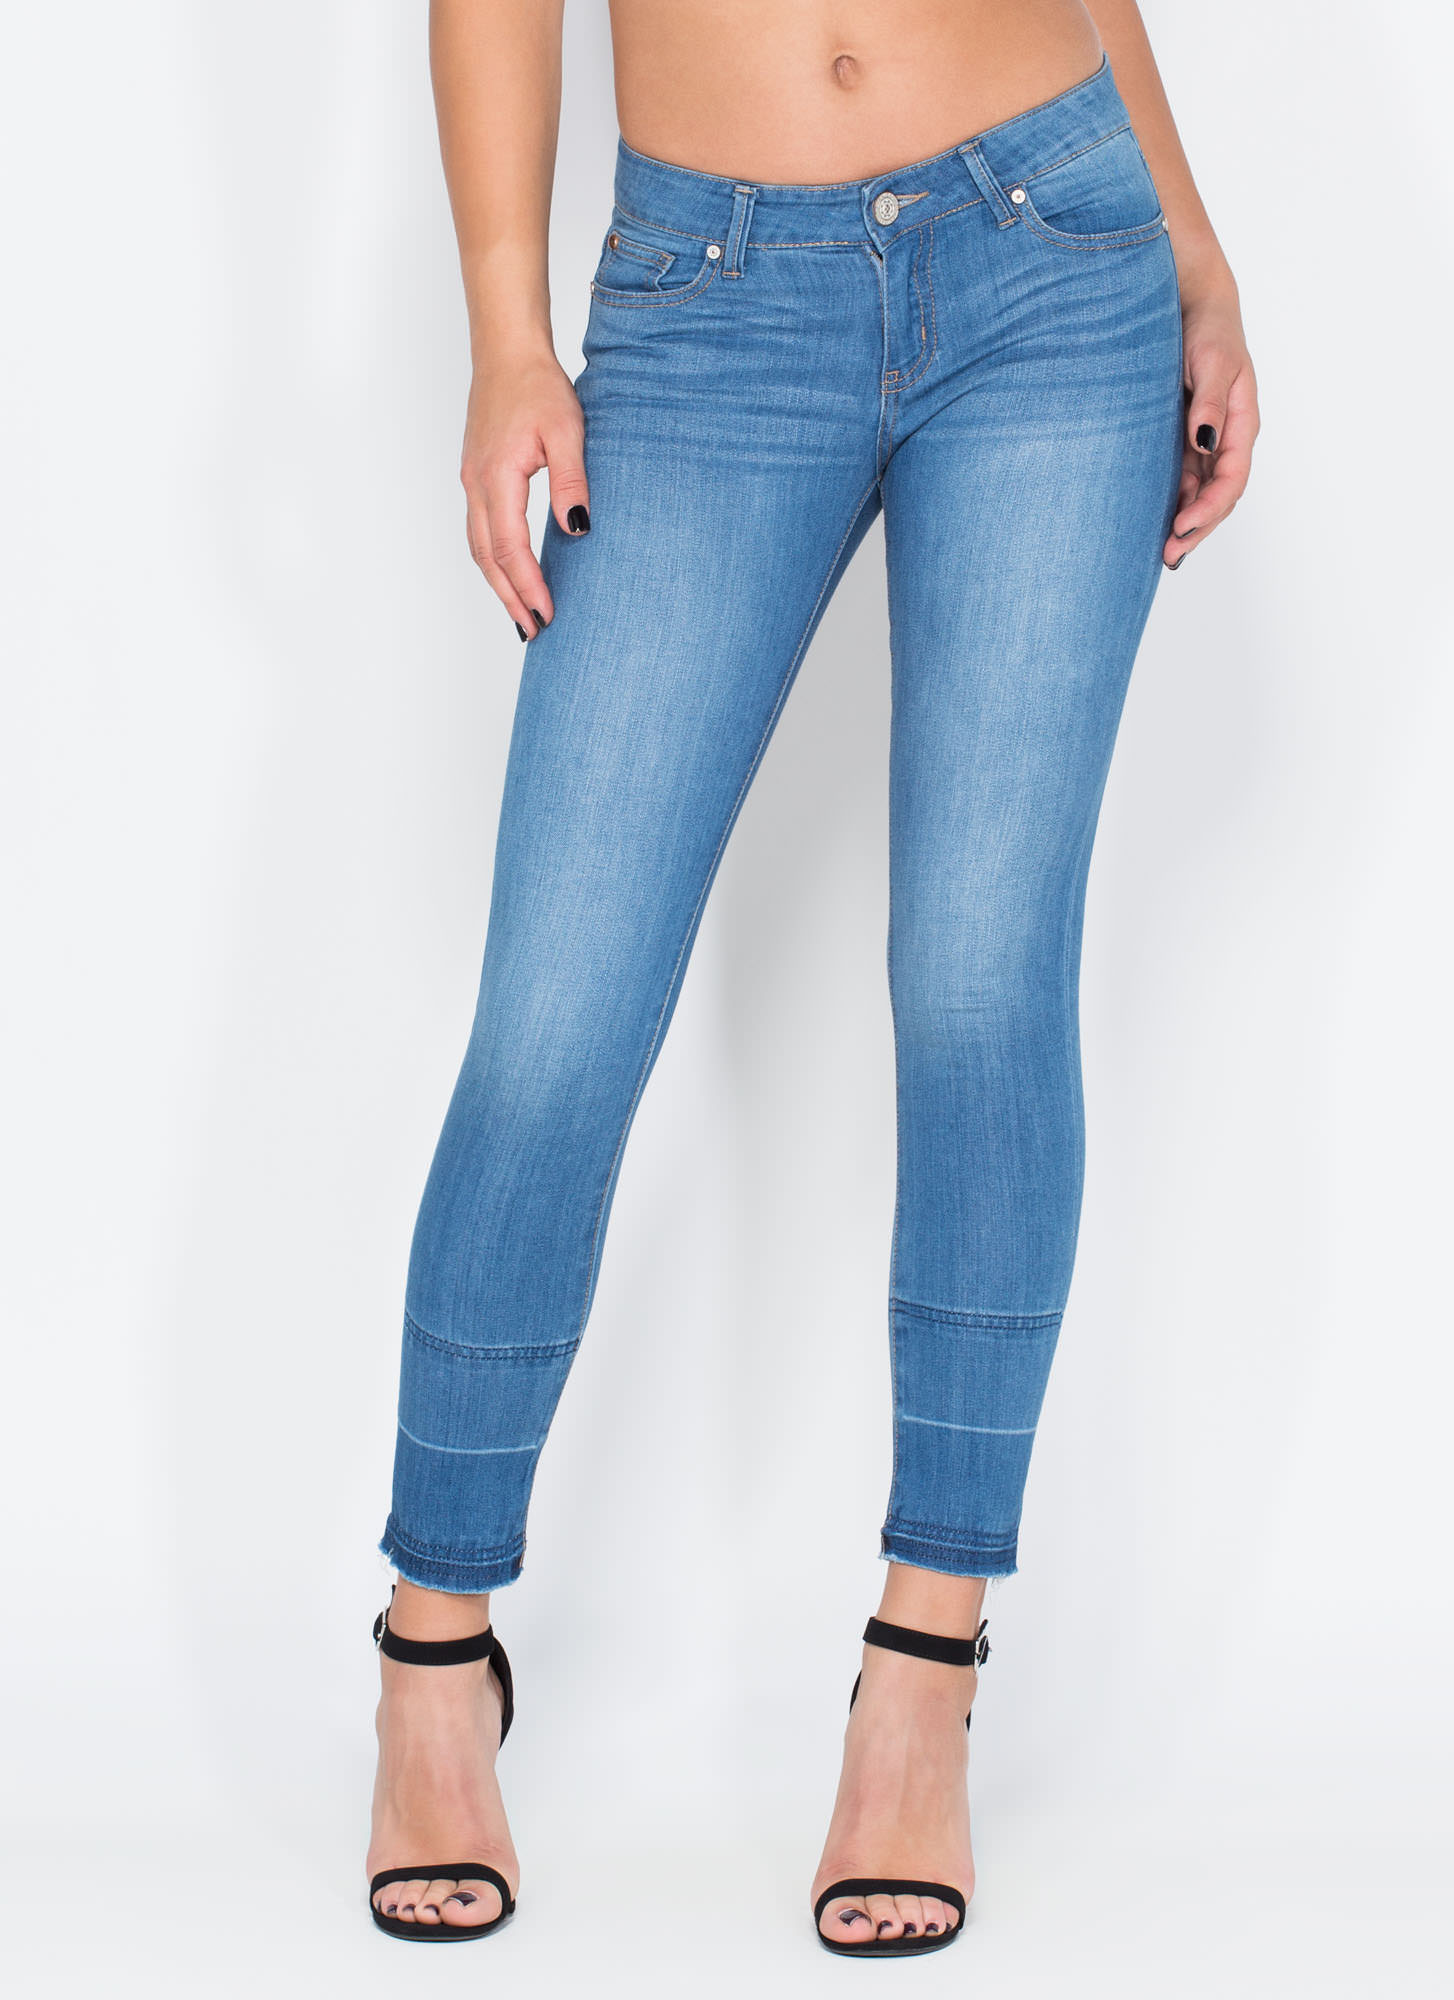 Dare To Dream Skinny Jeans BLUE - GoJane.com